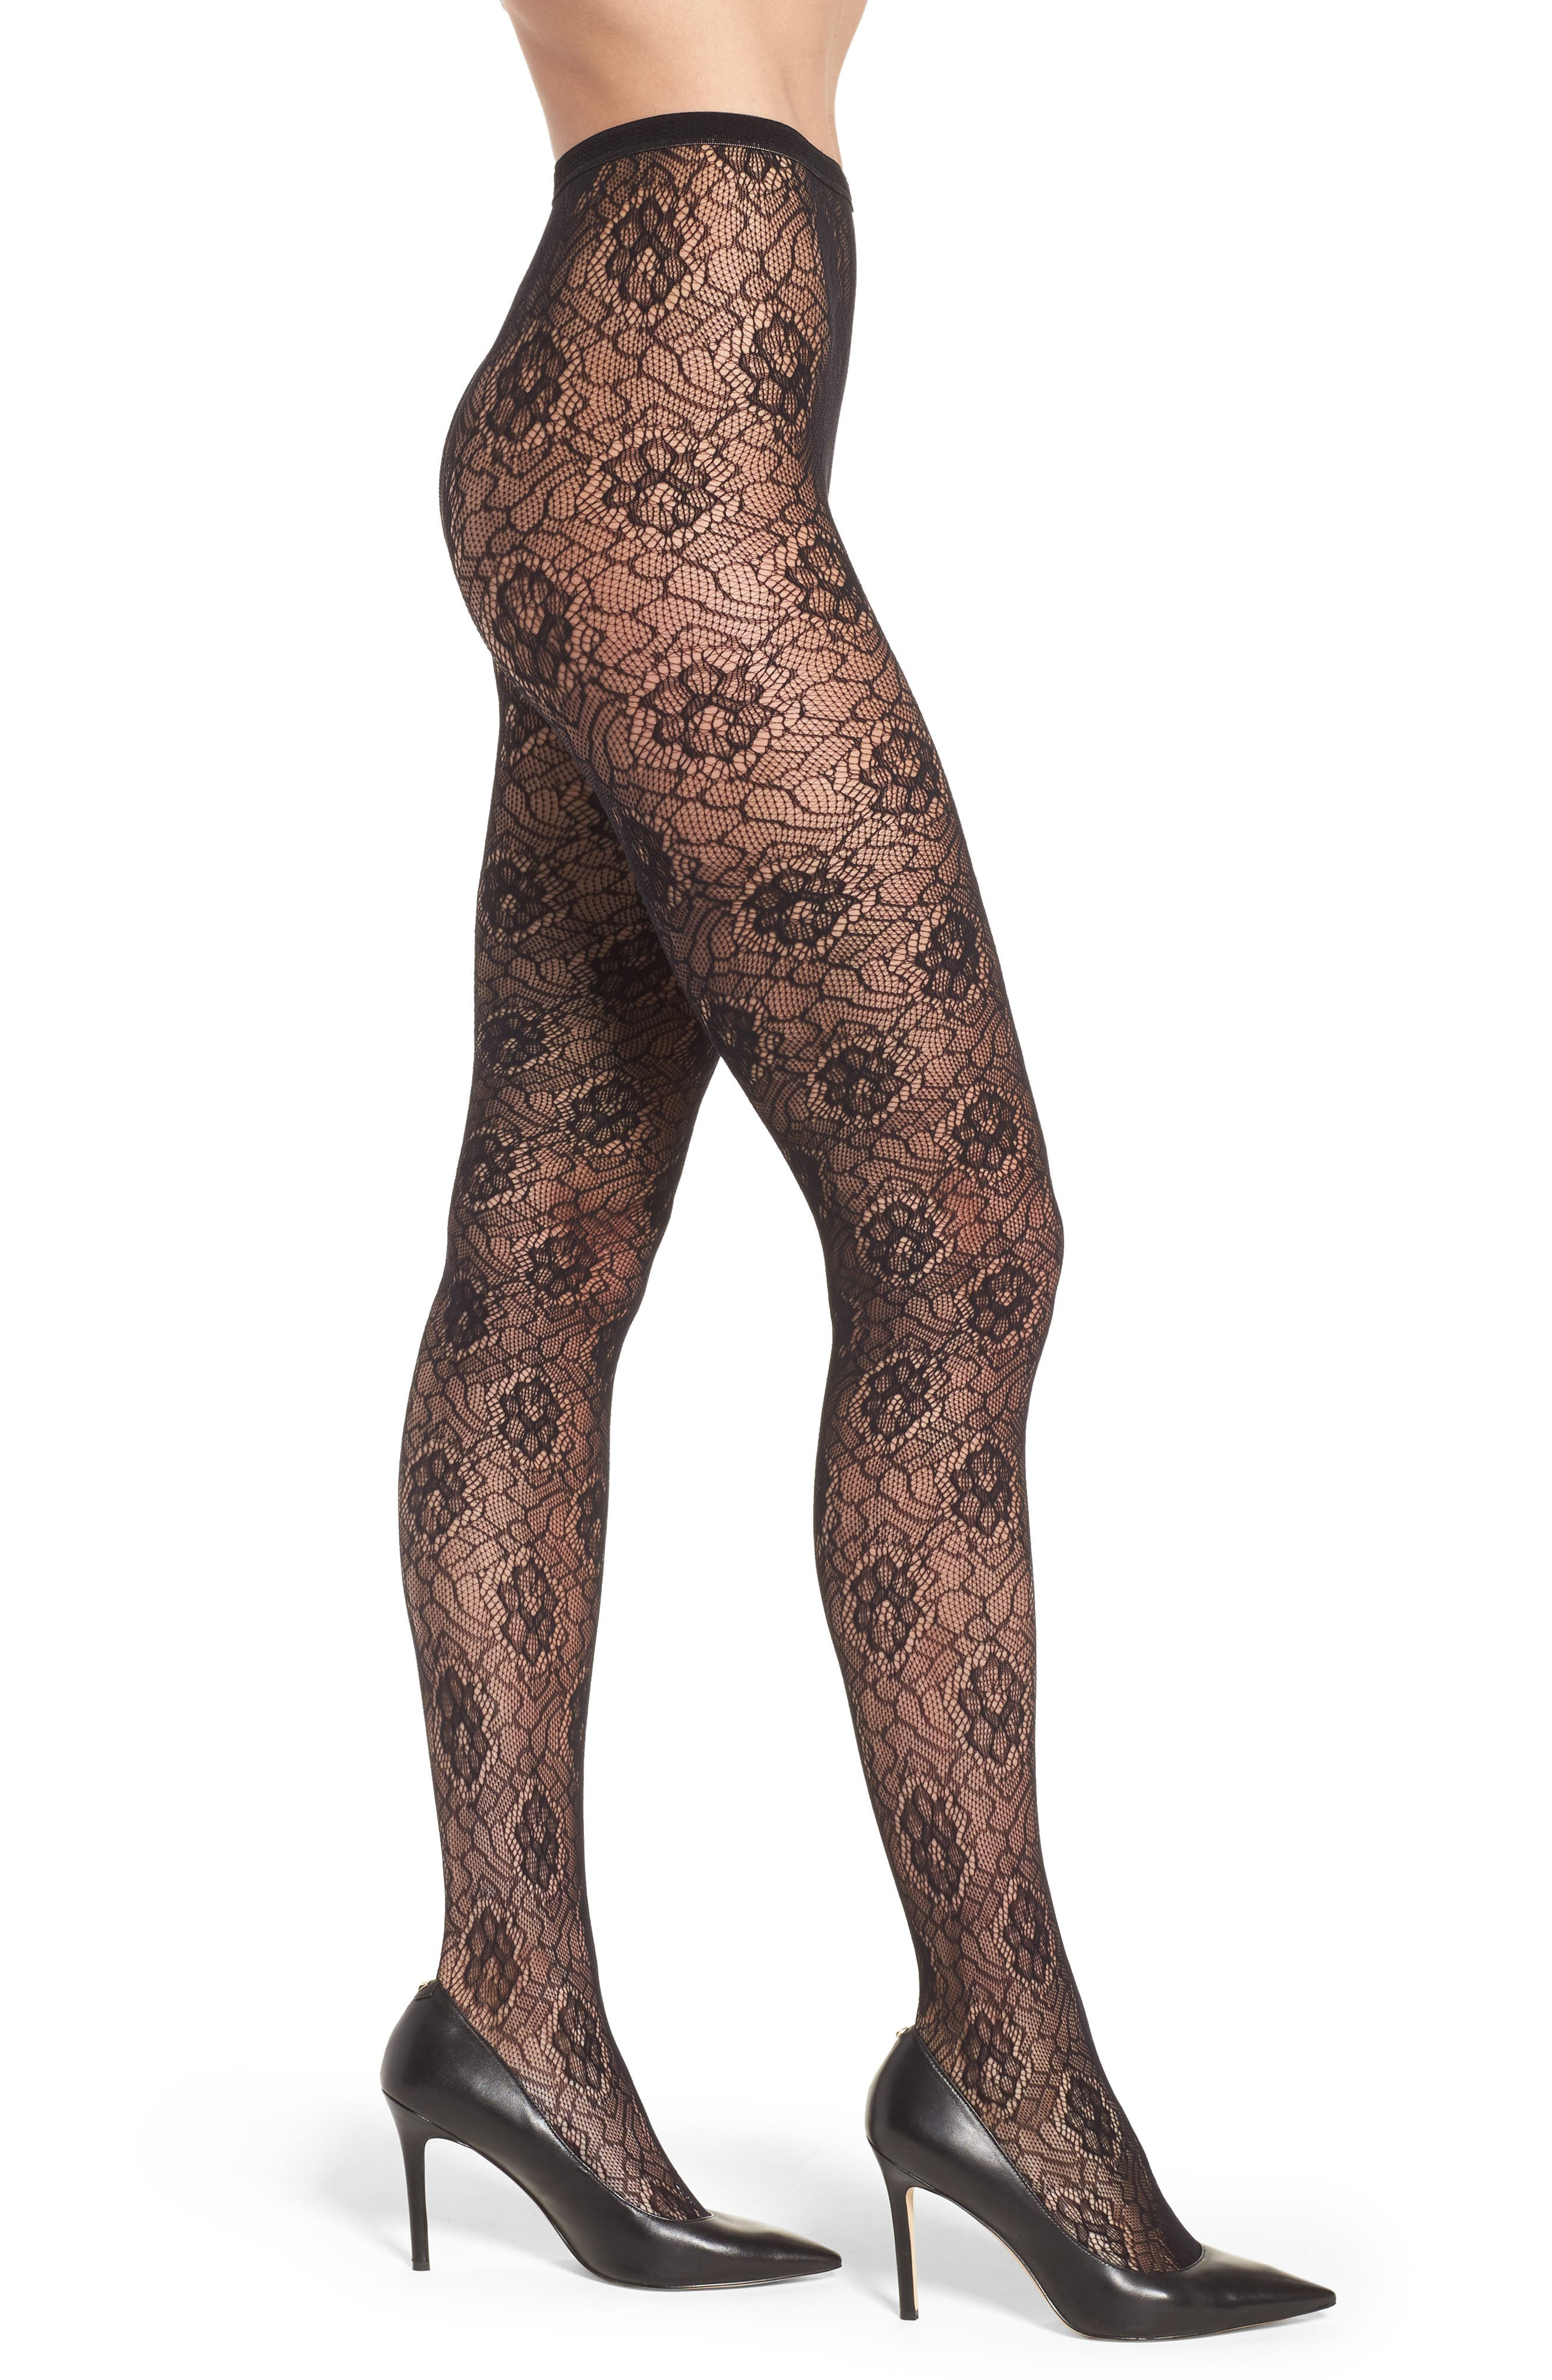 Large Rose Tights,                             Main thumbnail 1, color,                             001